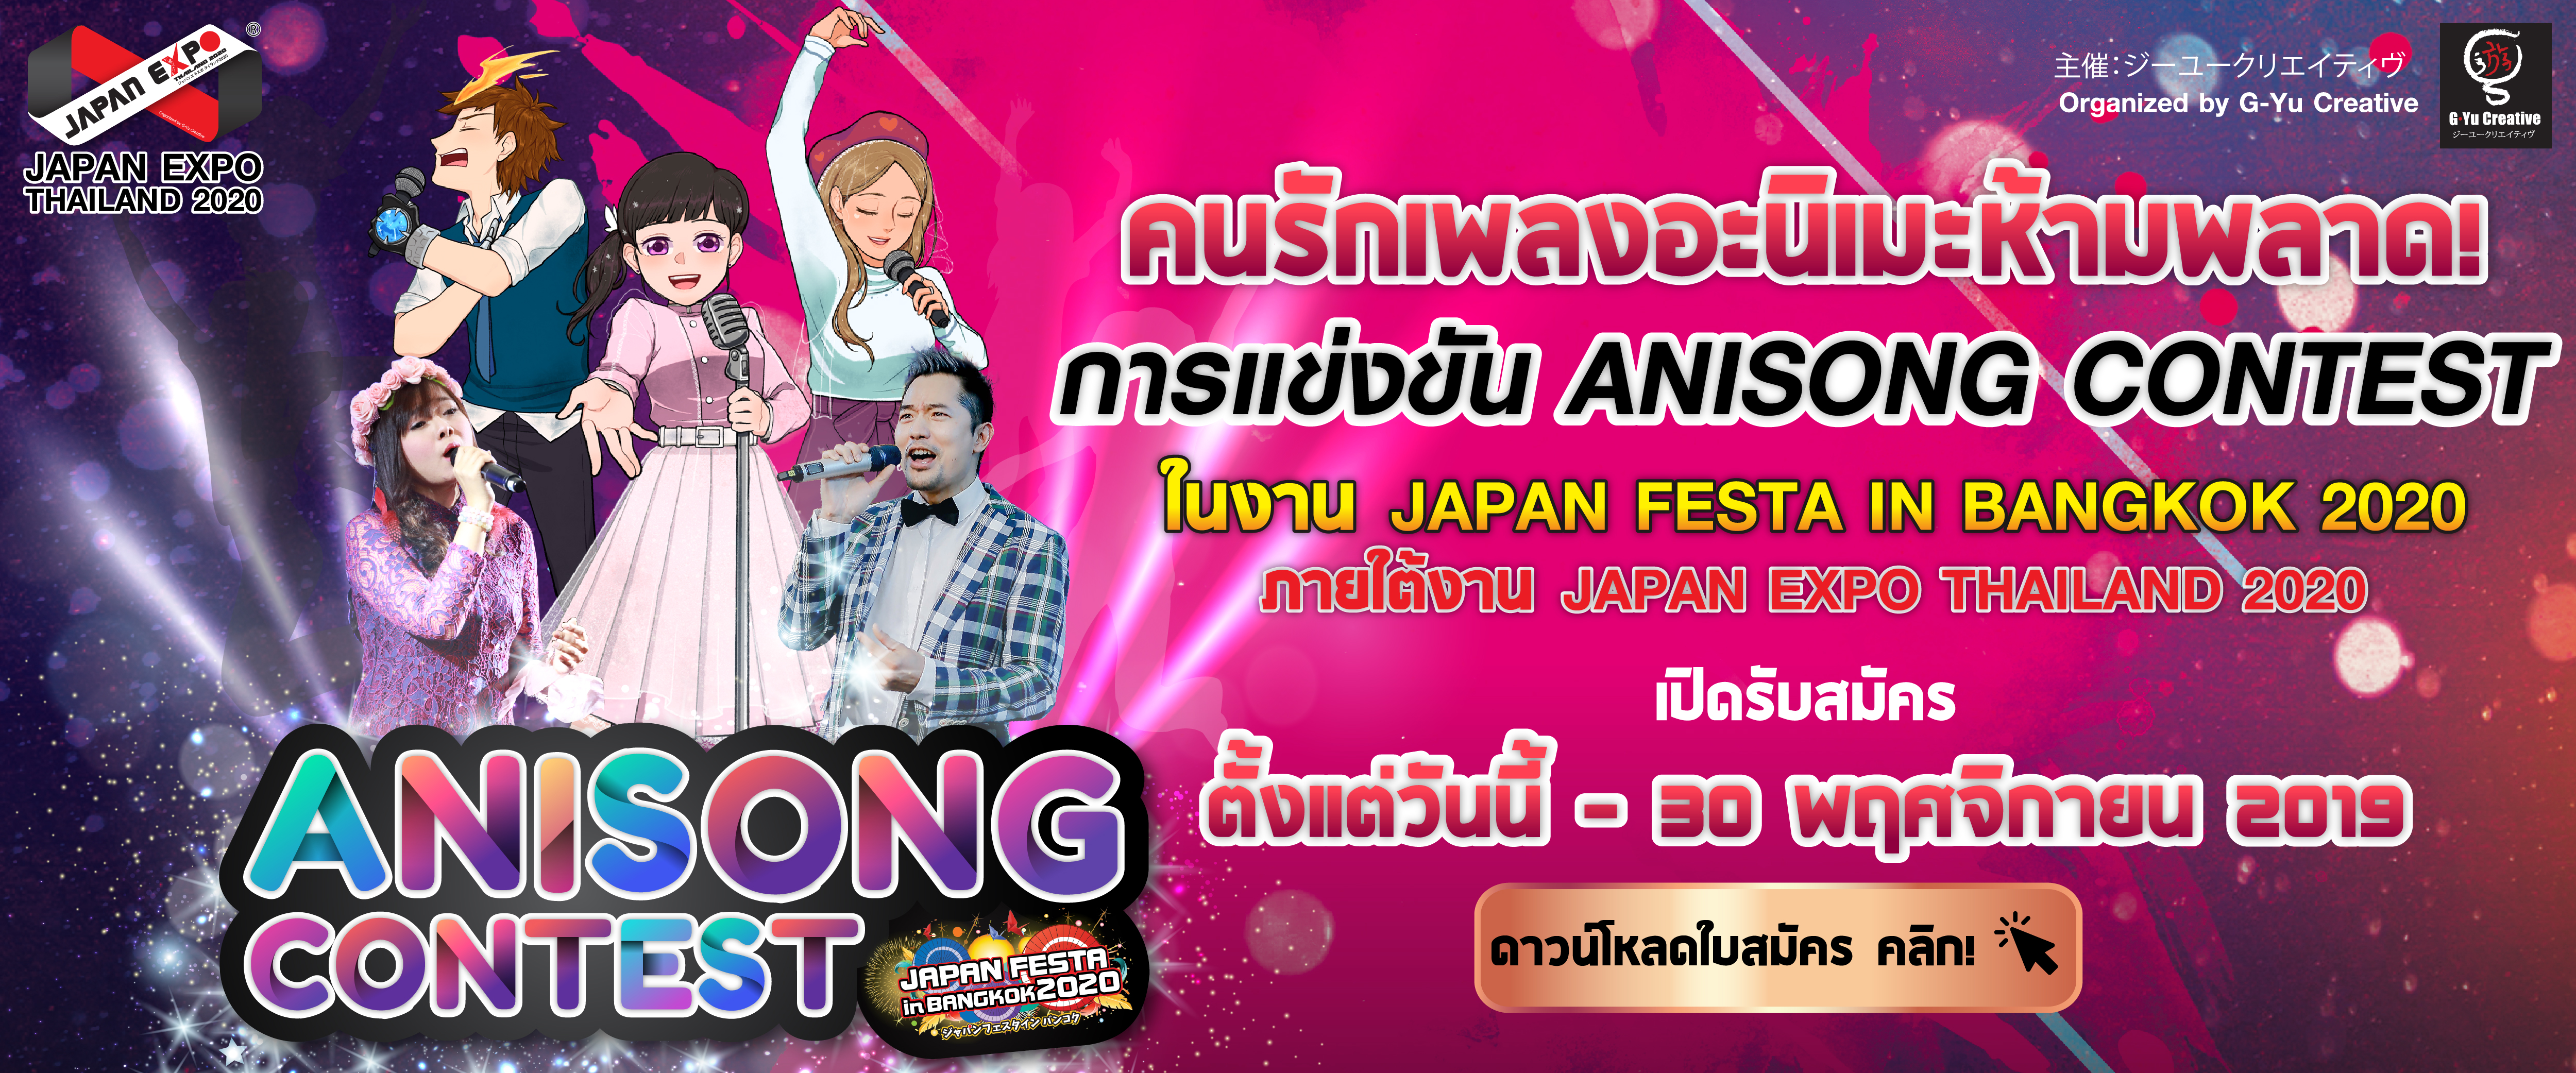 Anisong Contest-02